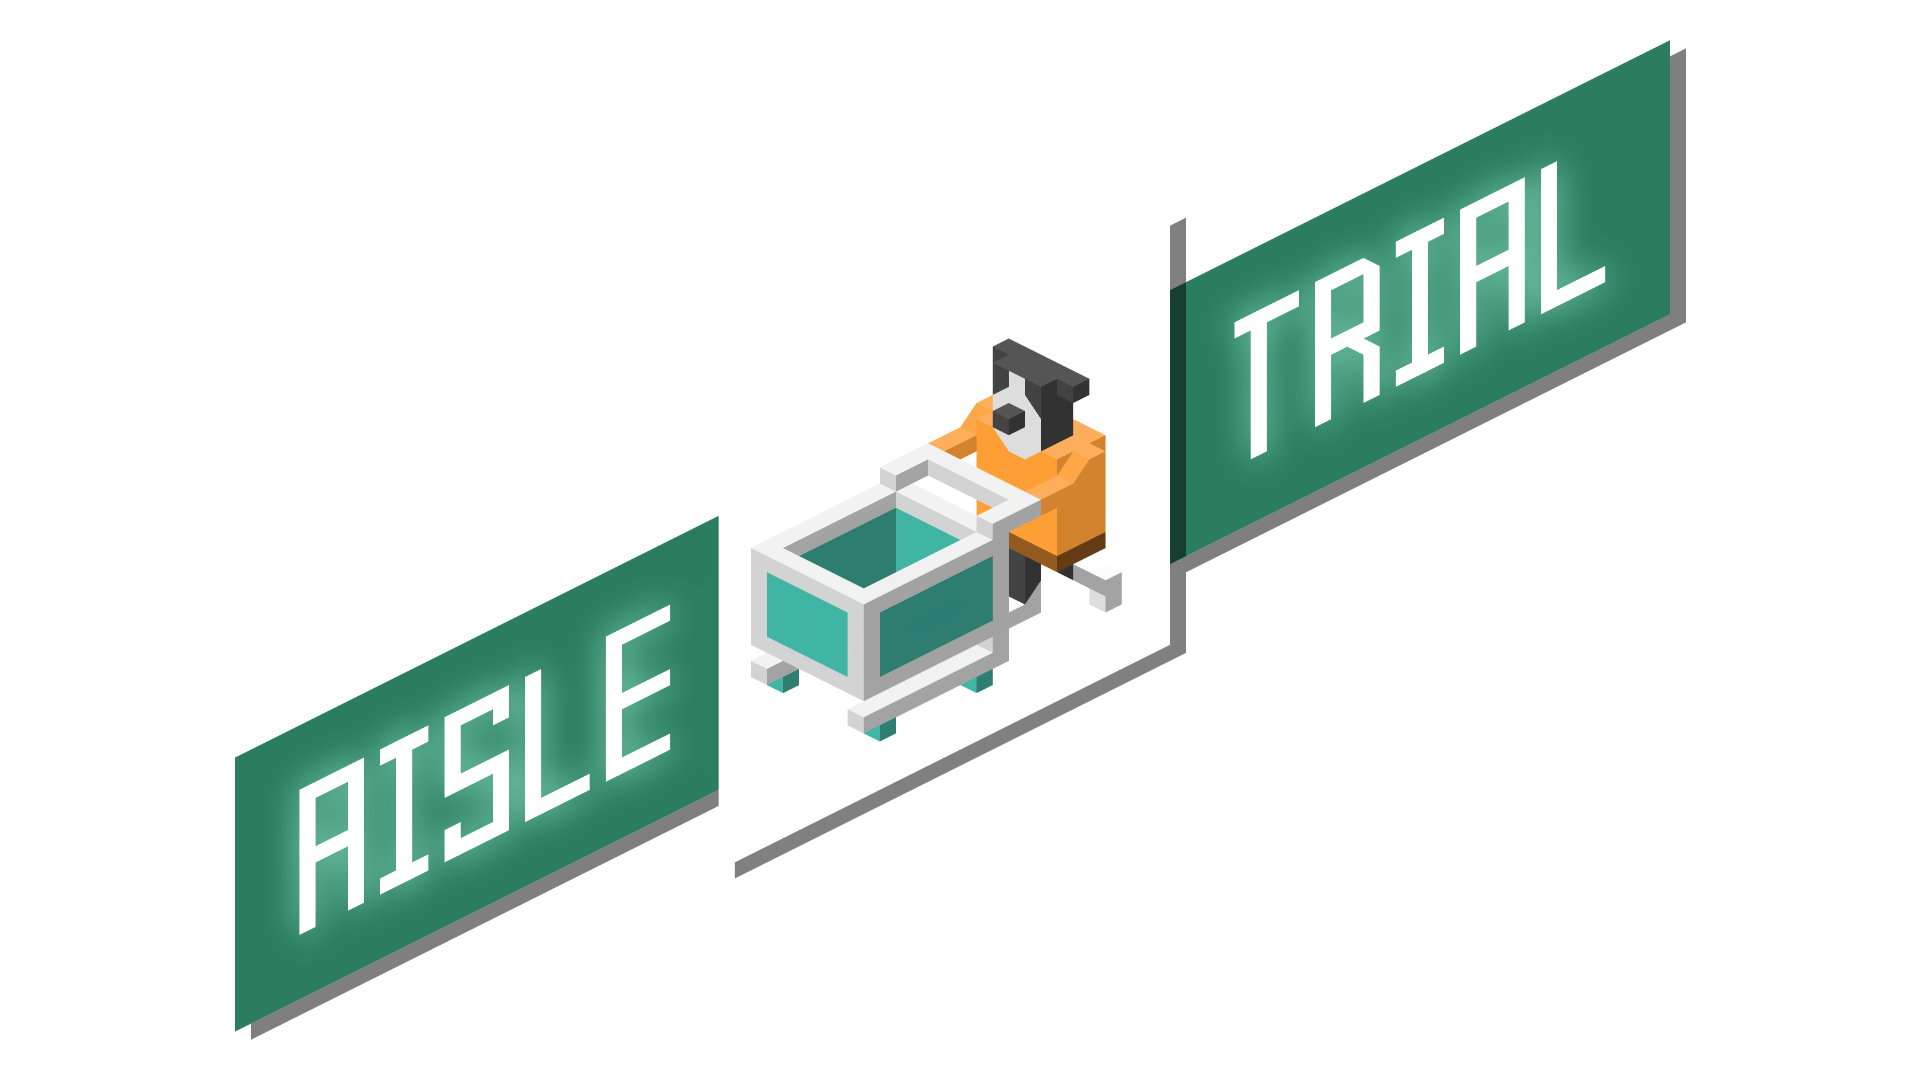 Aisle Trial: Puzzle Game! 🧩